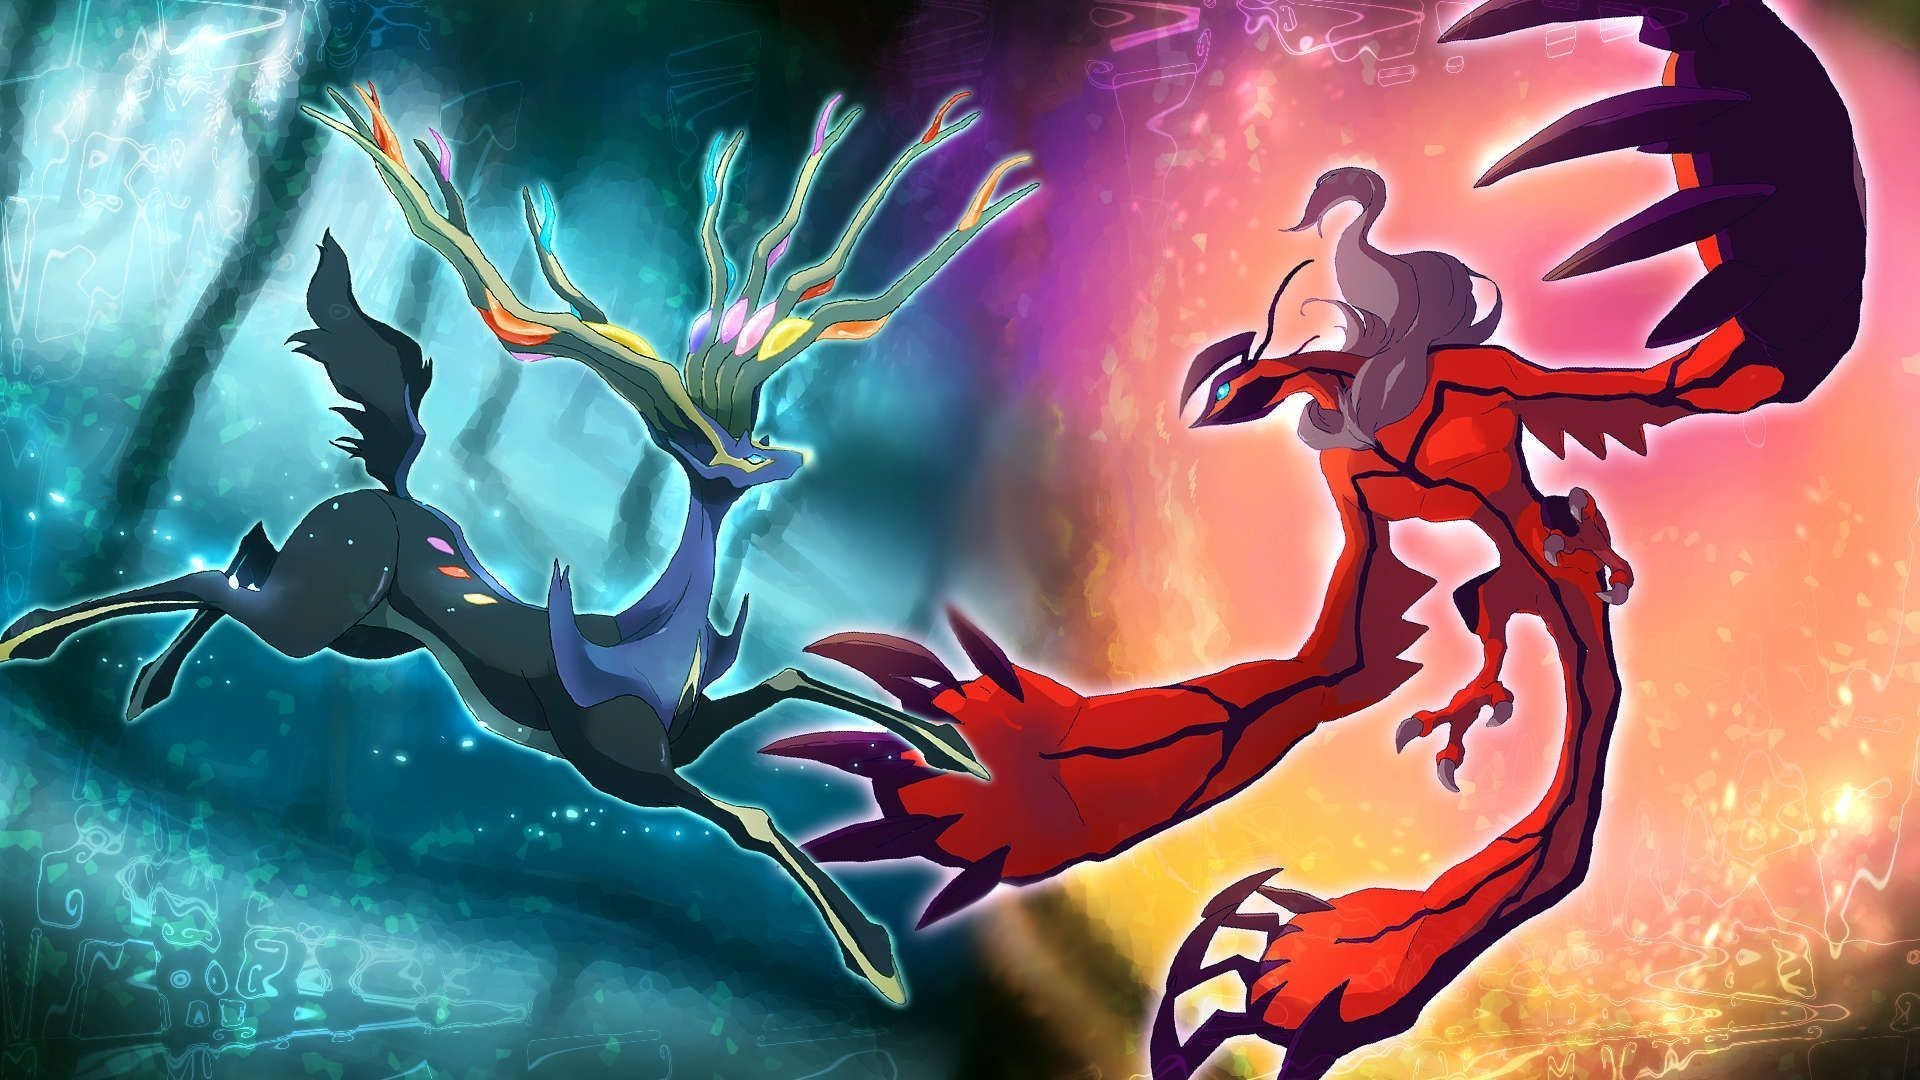 Res: 1920x1080,   All Legendary Pokemon Wallpapers - Wallpaper Cave